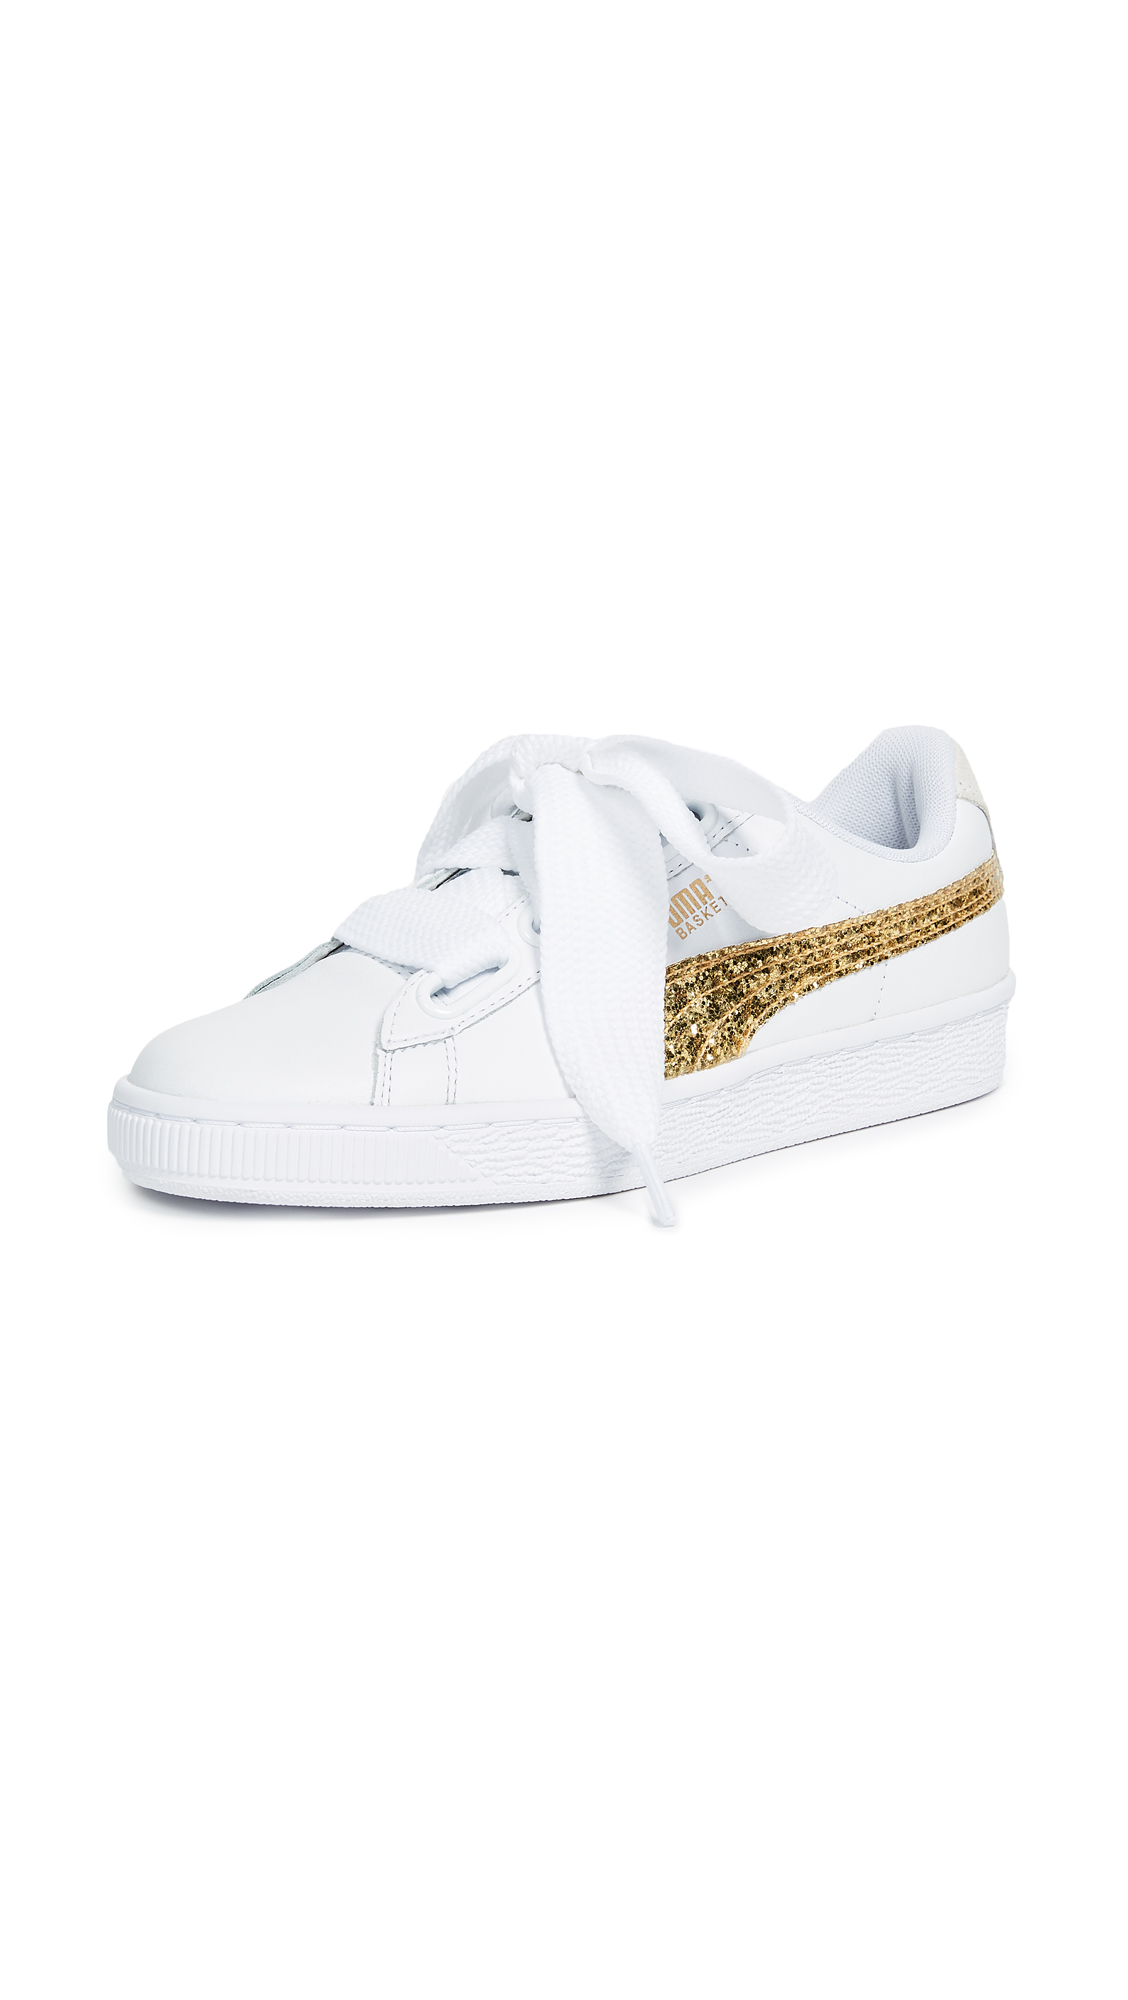 PUMA Basket Heart Glitter Sneakers - Puma White/Gold